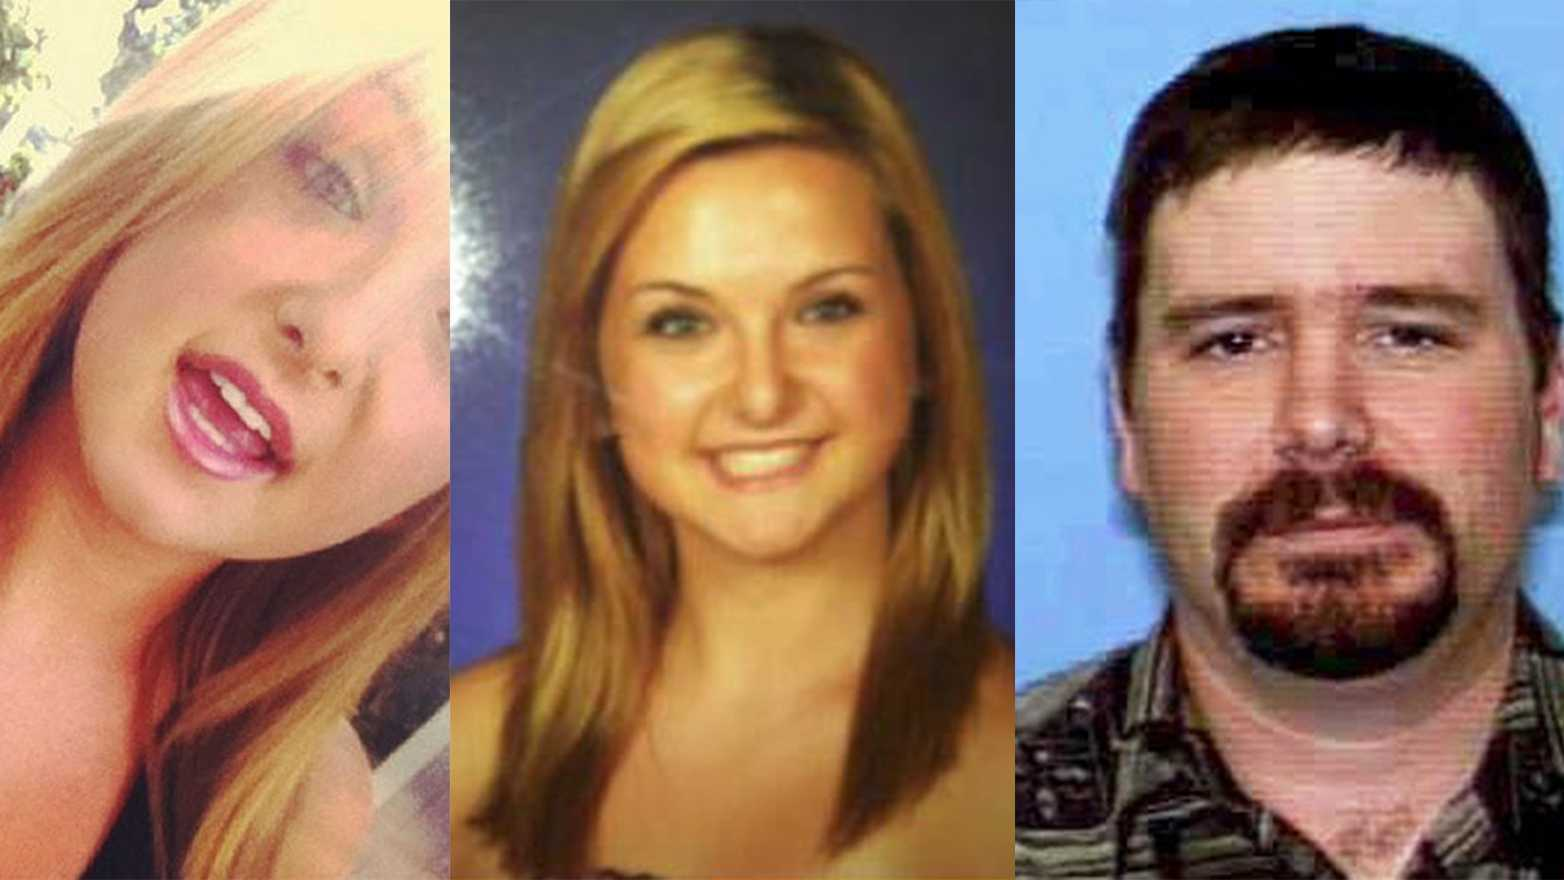 Investigators suspect James Lee DiMaggio, right, kidnapped Hannah Anderson, left.